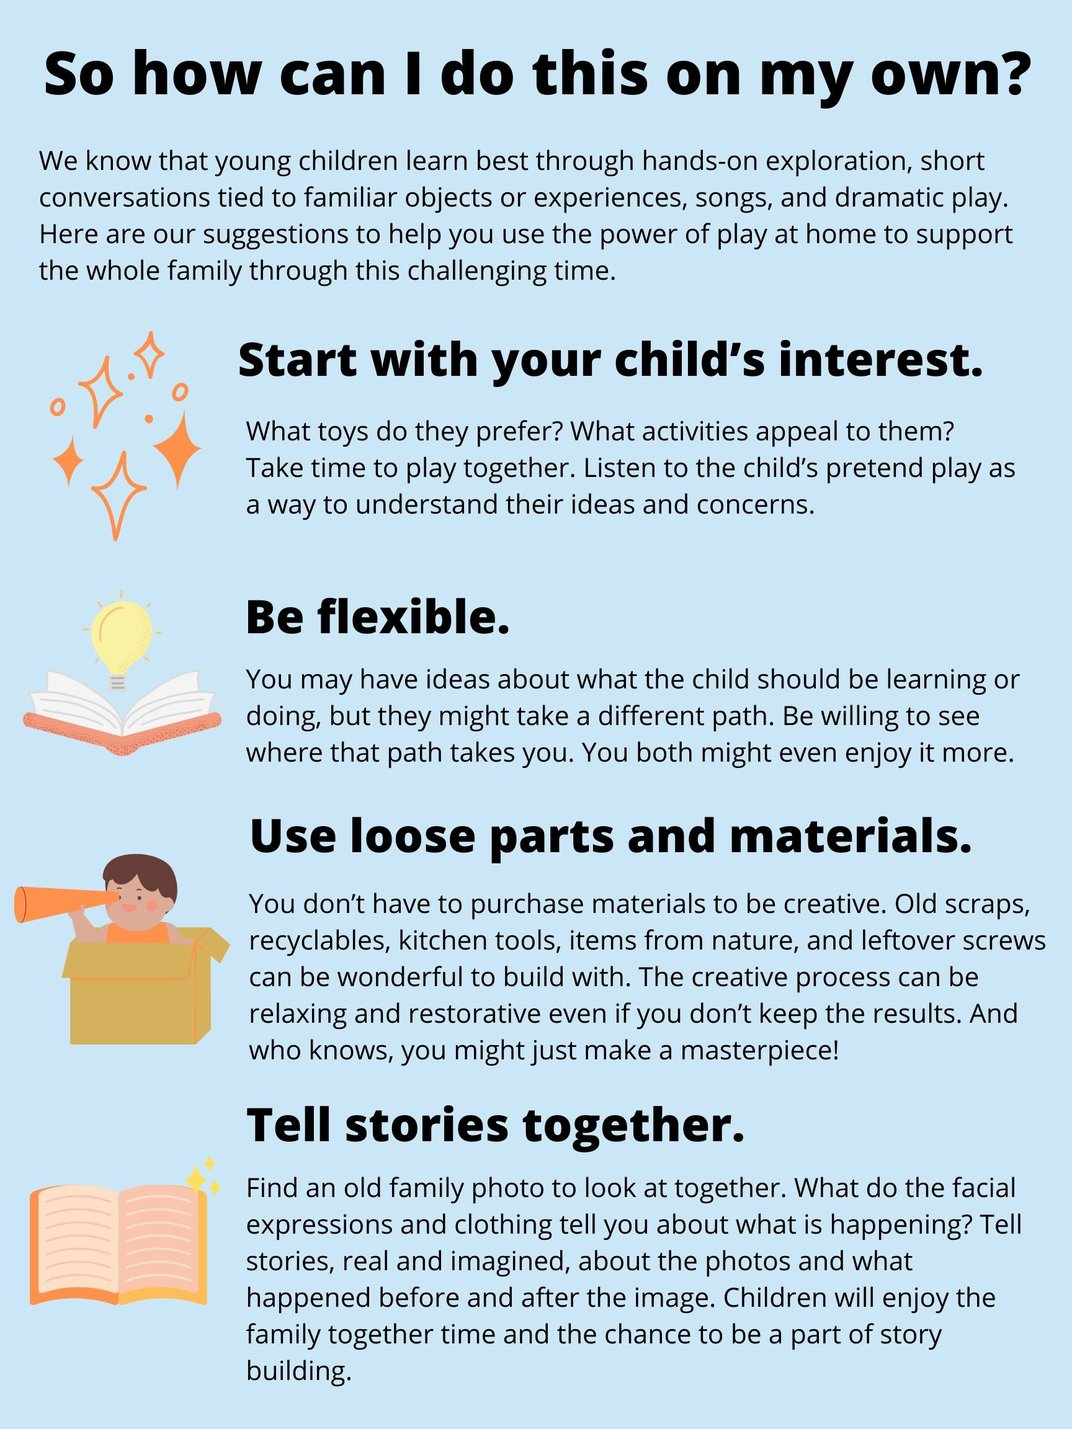 So how can I do this on my own? We know that young children learn best through hands-on exploration, short conversations tied to familiar objects or experiences, songs and dramatic play. Here are our suggestions to help you use the power of play at home.